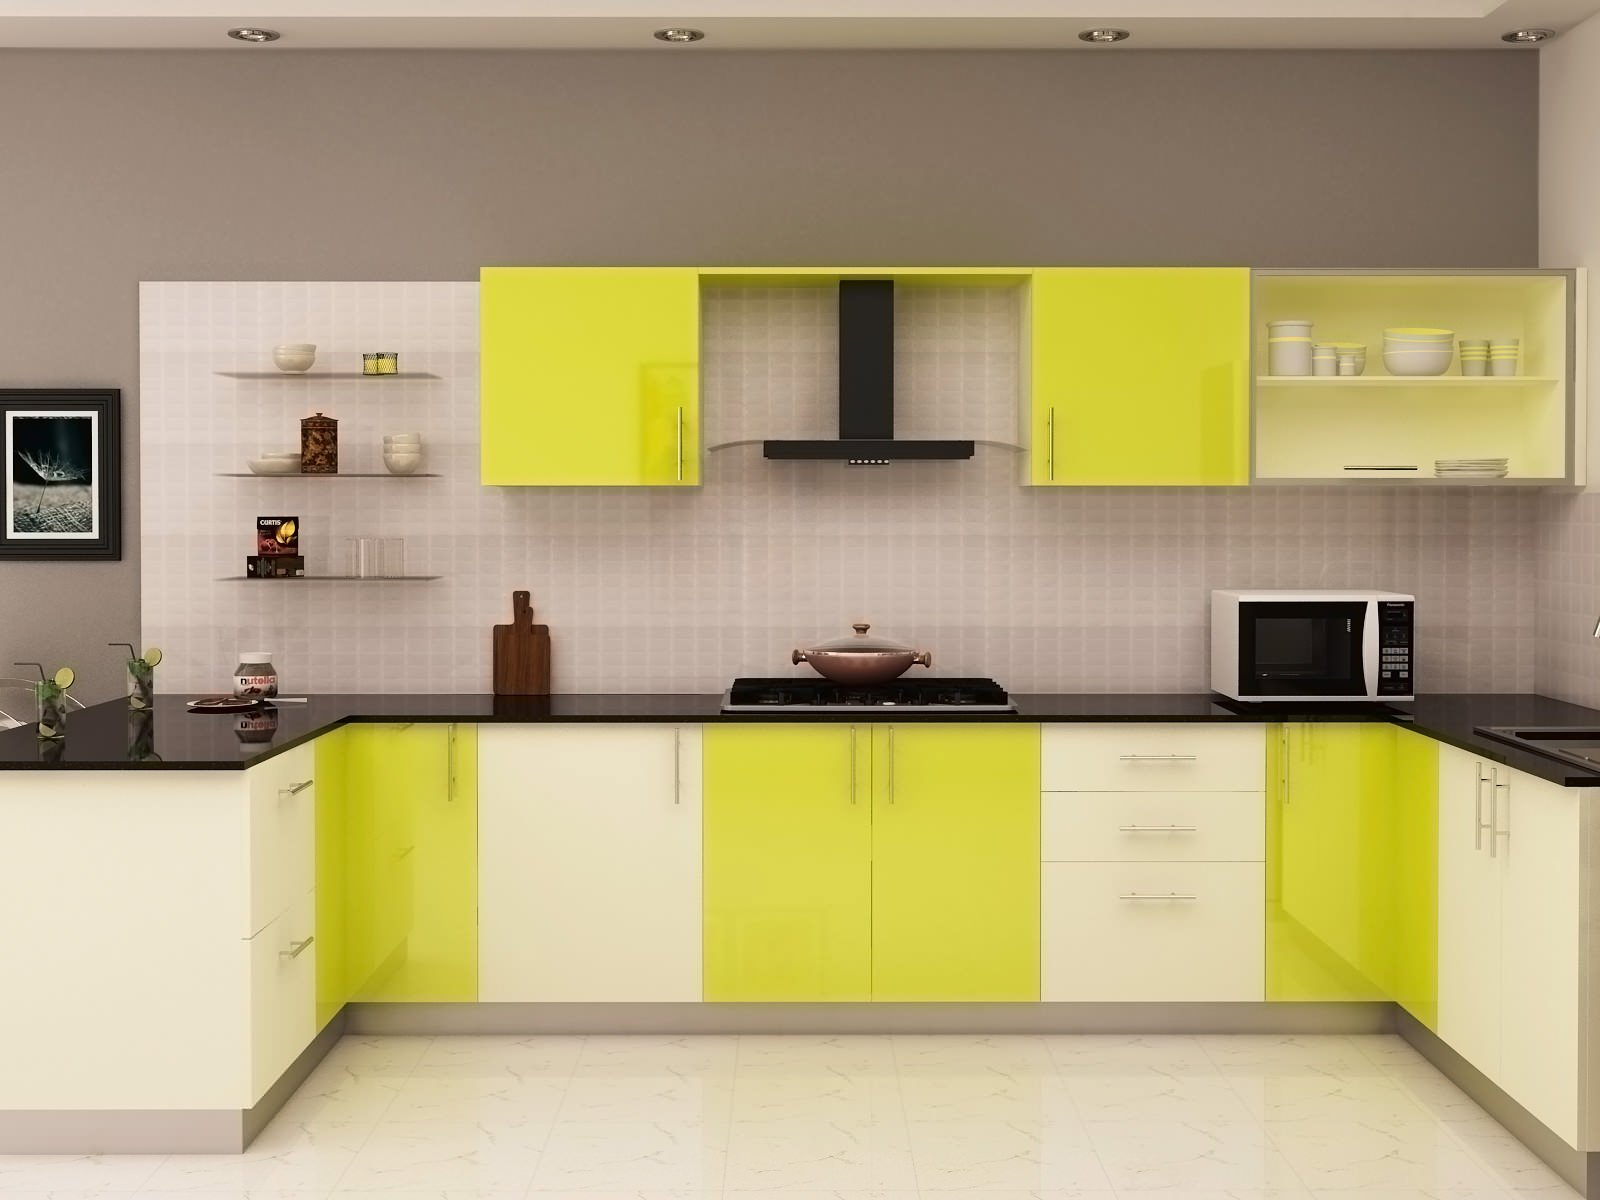 Lariokitchen modular kitchens chennai wardrobes Modular kitchen design colors